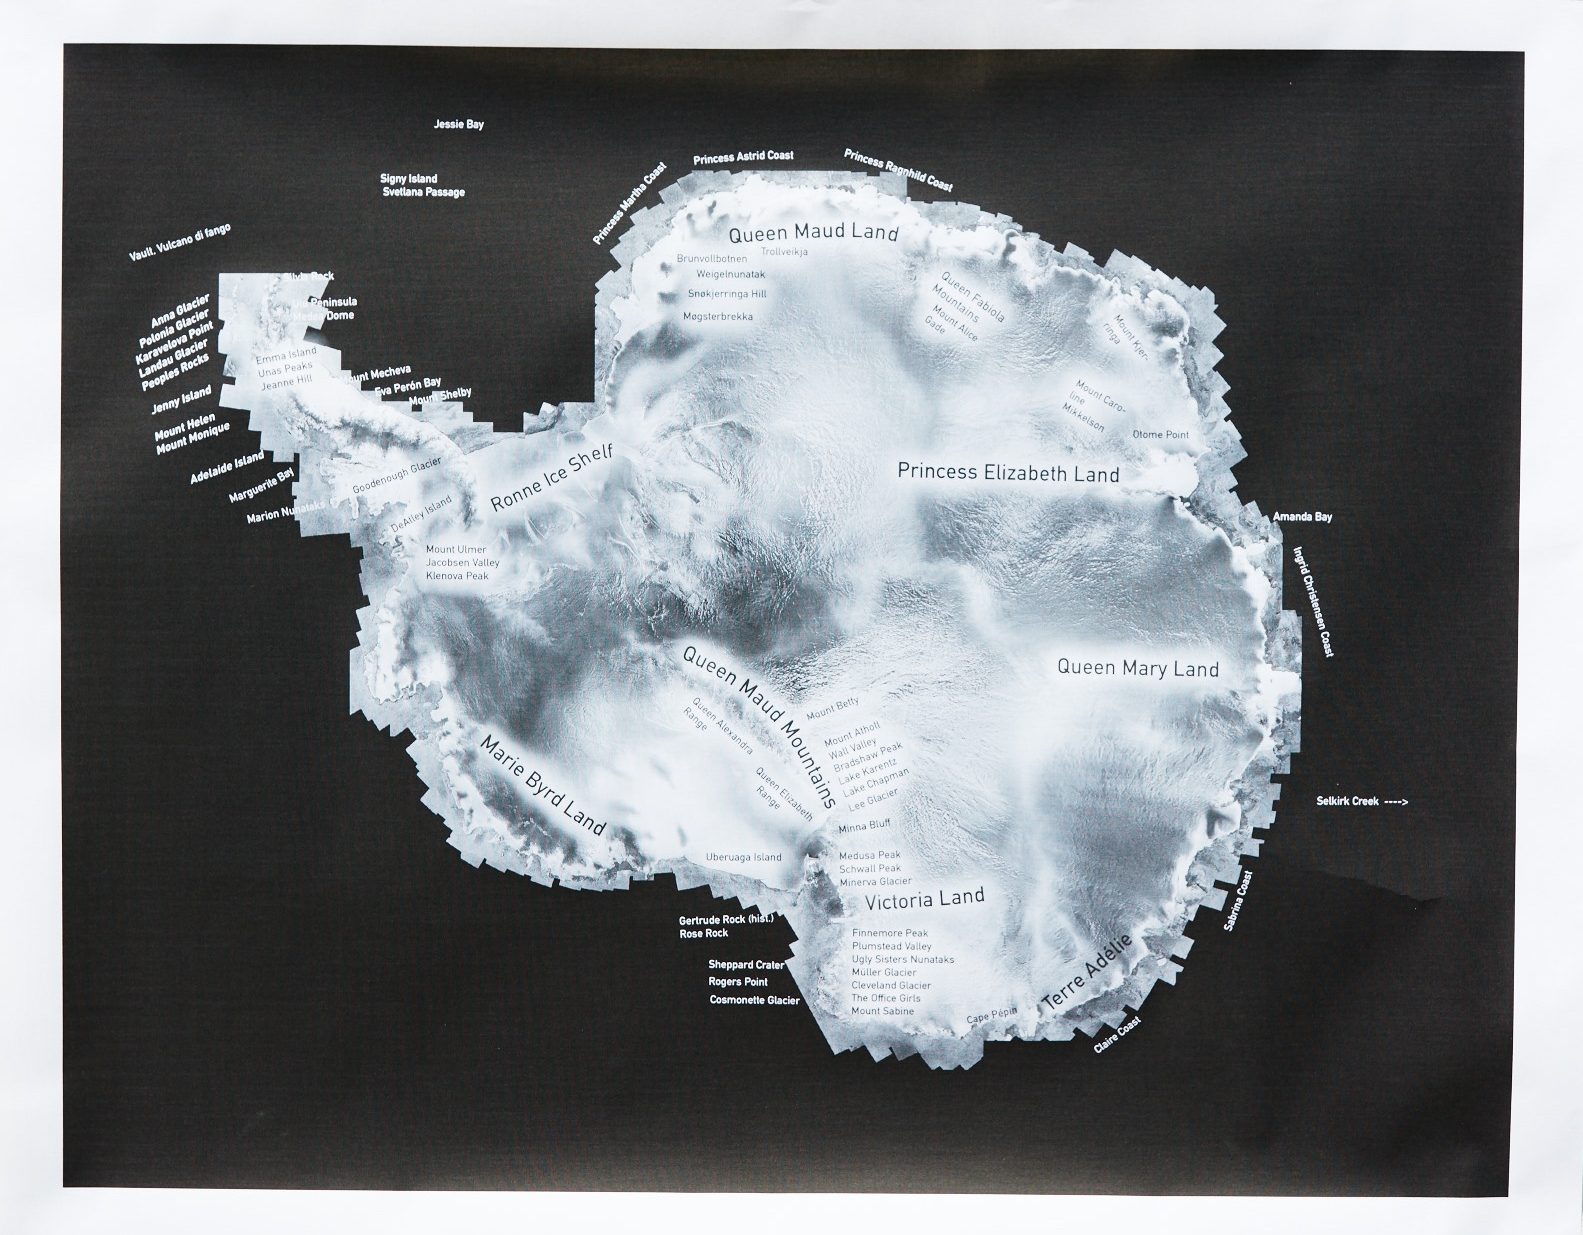 Prototype2 Antarctic Women Place names map  (official place names named for Antarctic women from scientists, patrons, daughters, queens, support staff, etc),Scientific Committee on Antarctic Research Open Science Conference, presented in Malaysia Aug 22, 2016 at Wikibomb Antarctic Women event to launch 75+ new or updated bios on women scientists in Antarctica. Additions? email: carol @ caroldevine.org